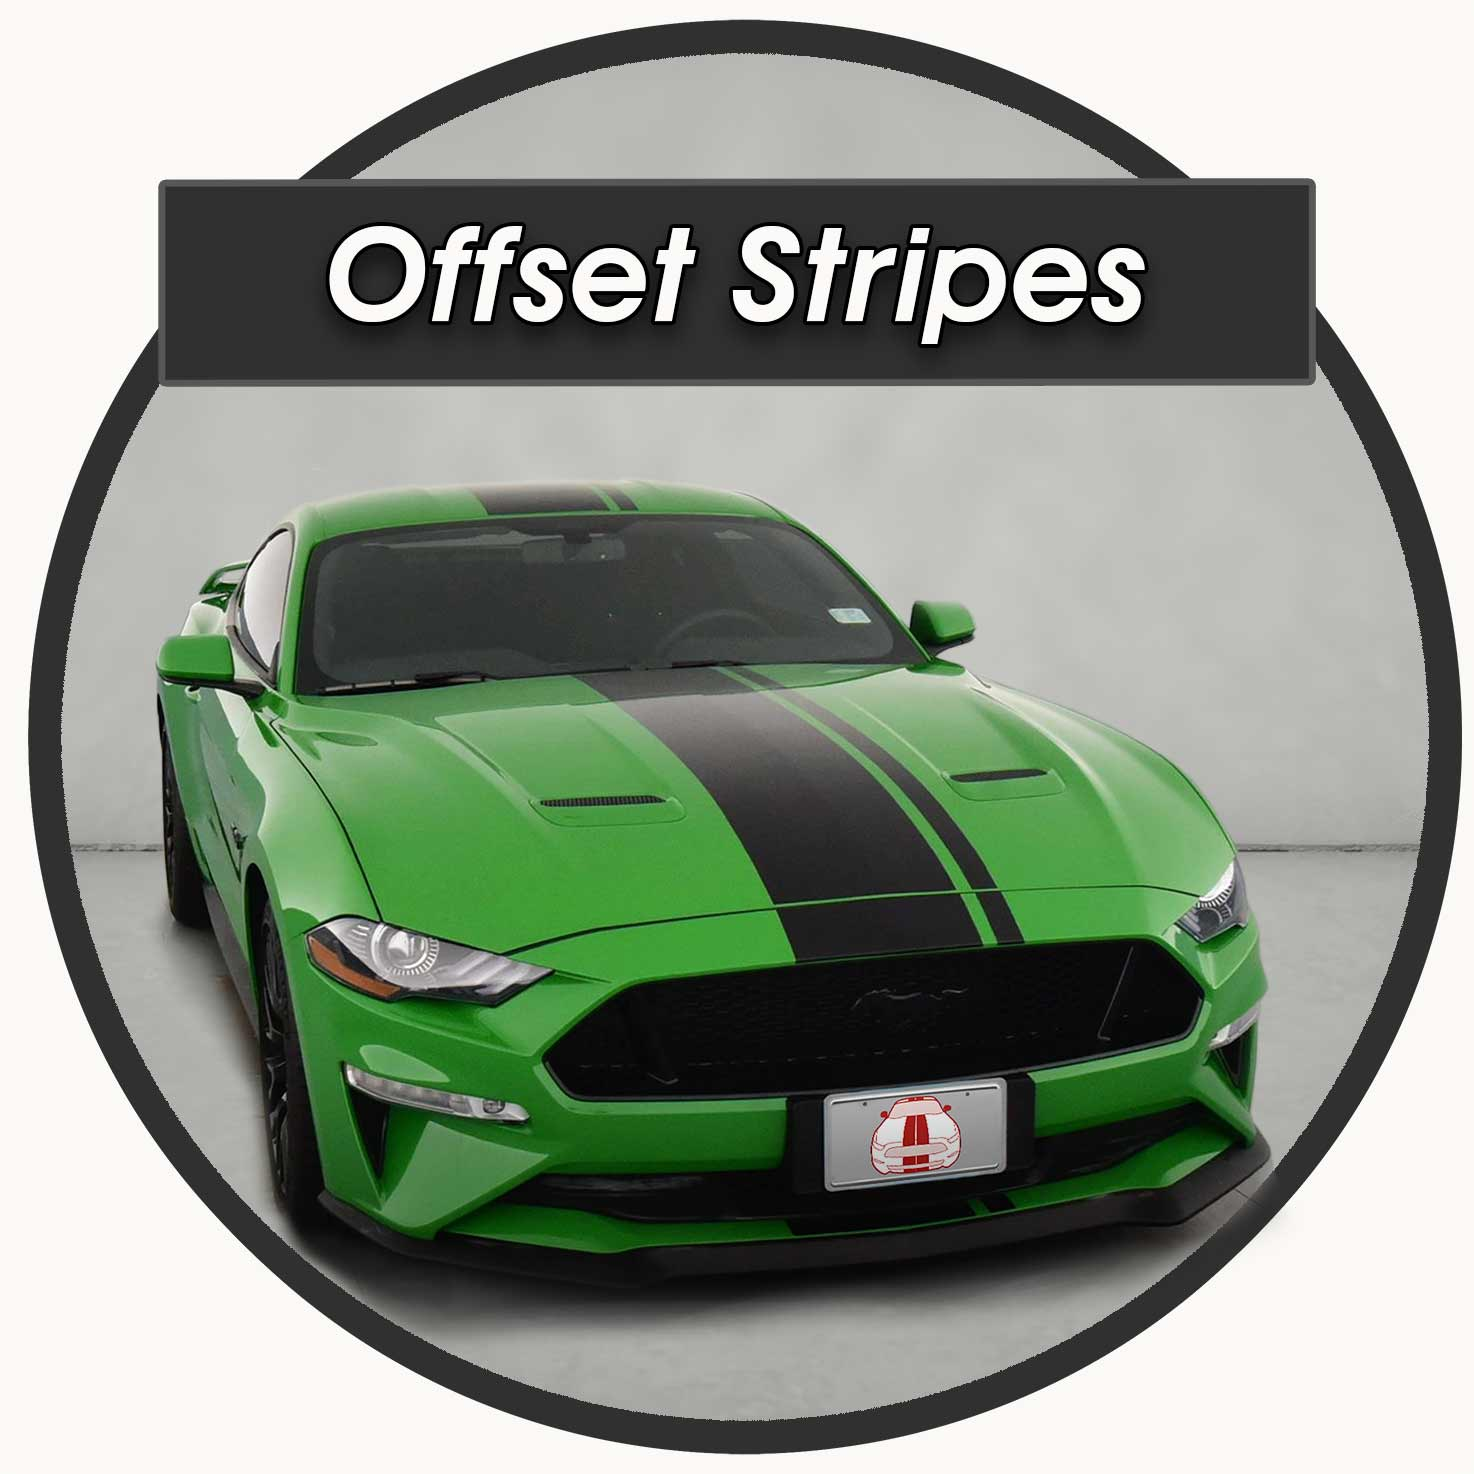 Offset Center stripes on a green mustang exterior vinyl decals for sale